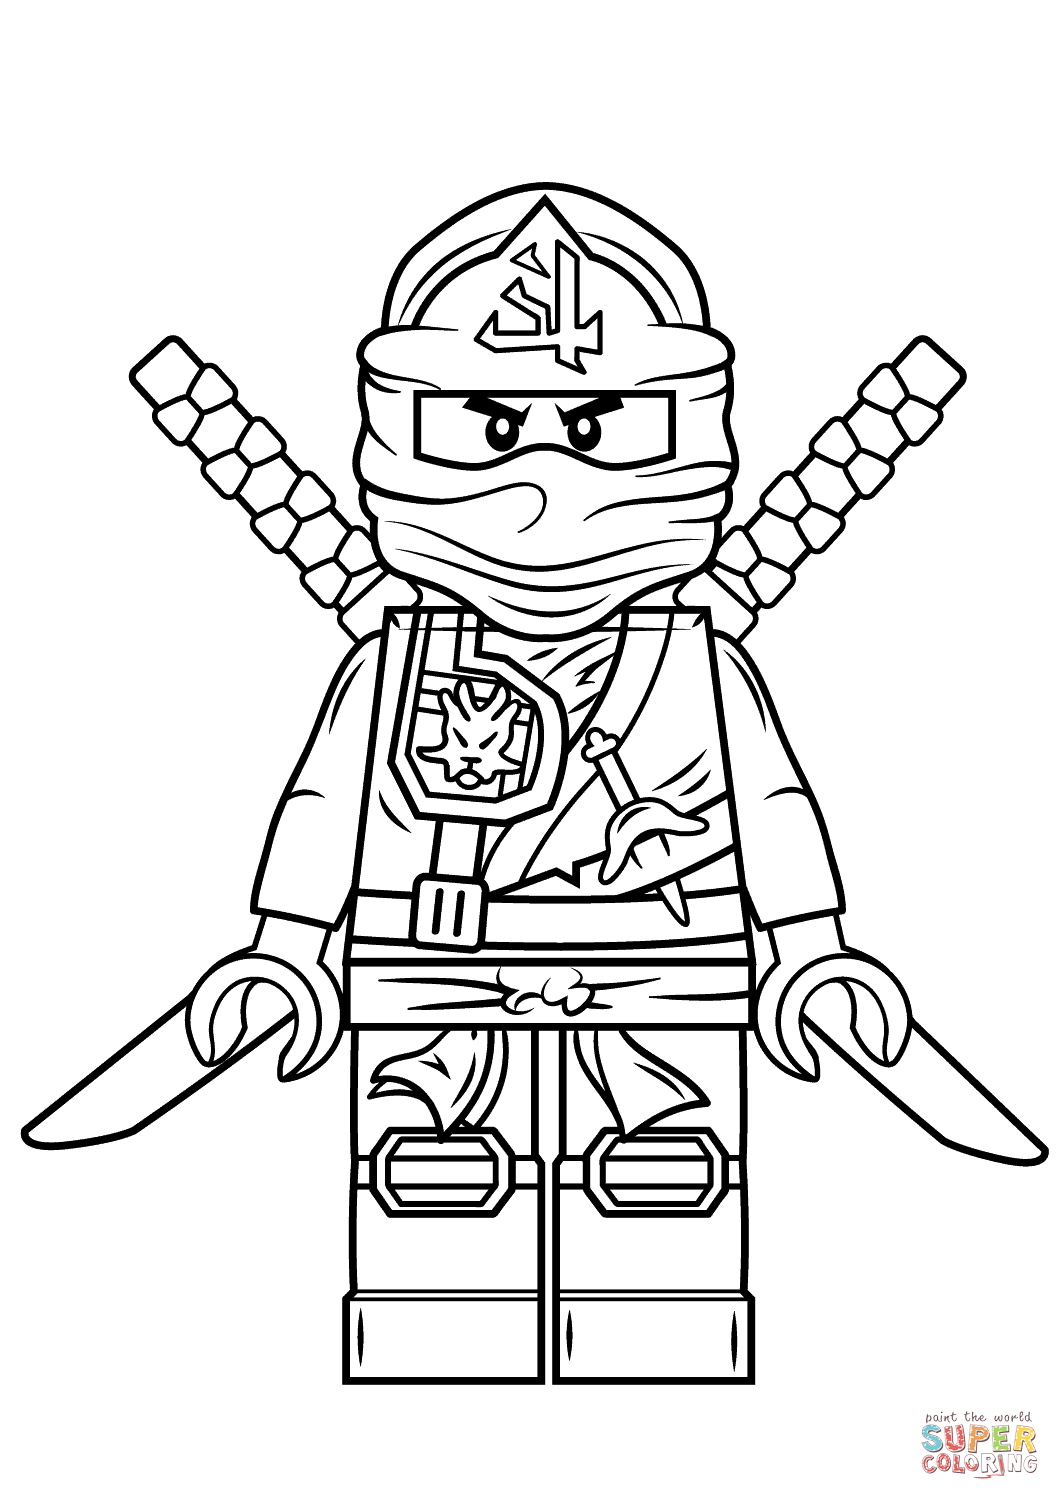 pictures of lego ninjago lego ninjago free coloring pages ninjago lego of pictures